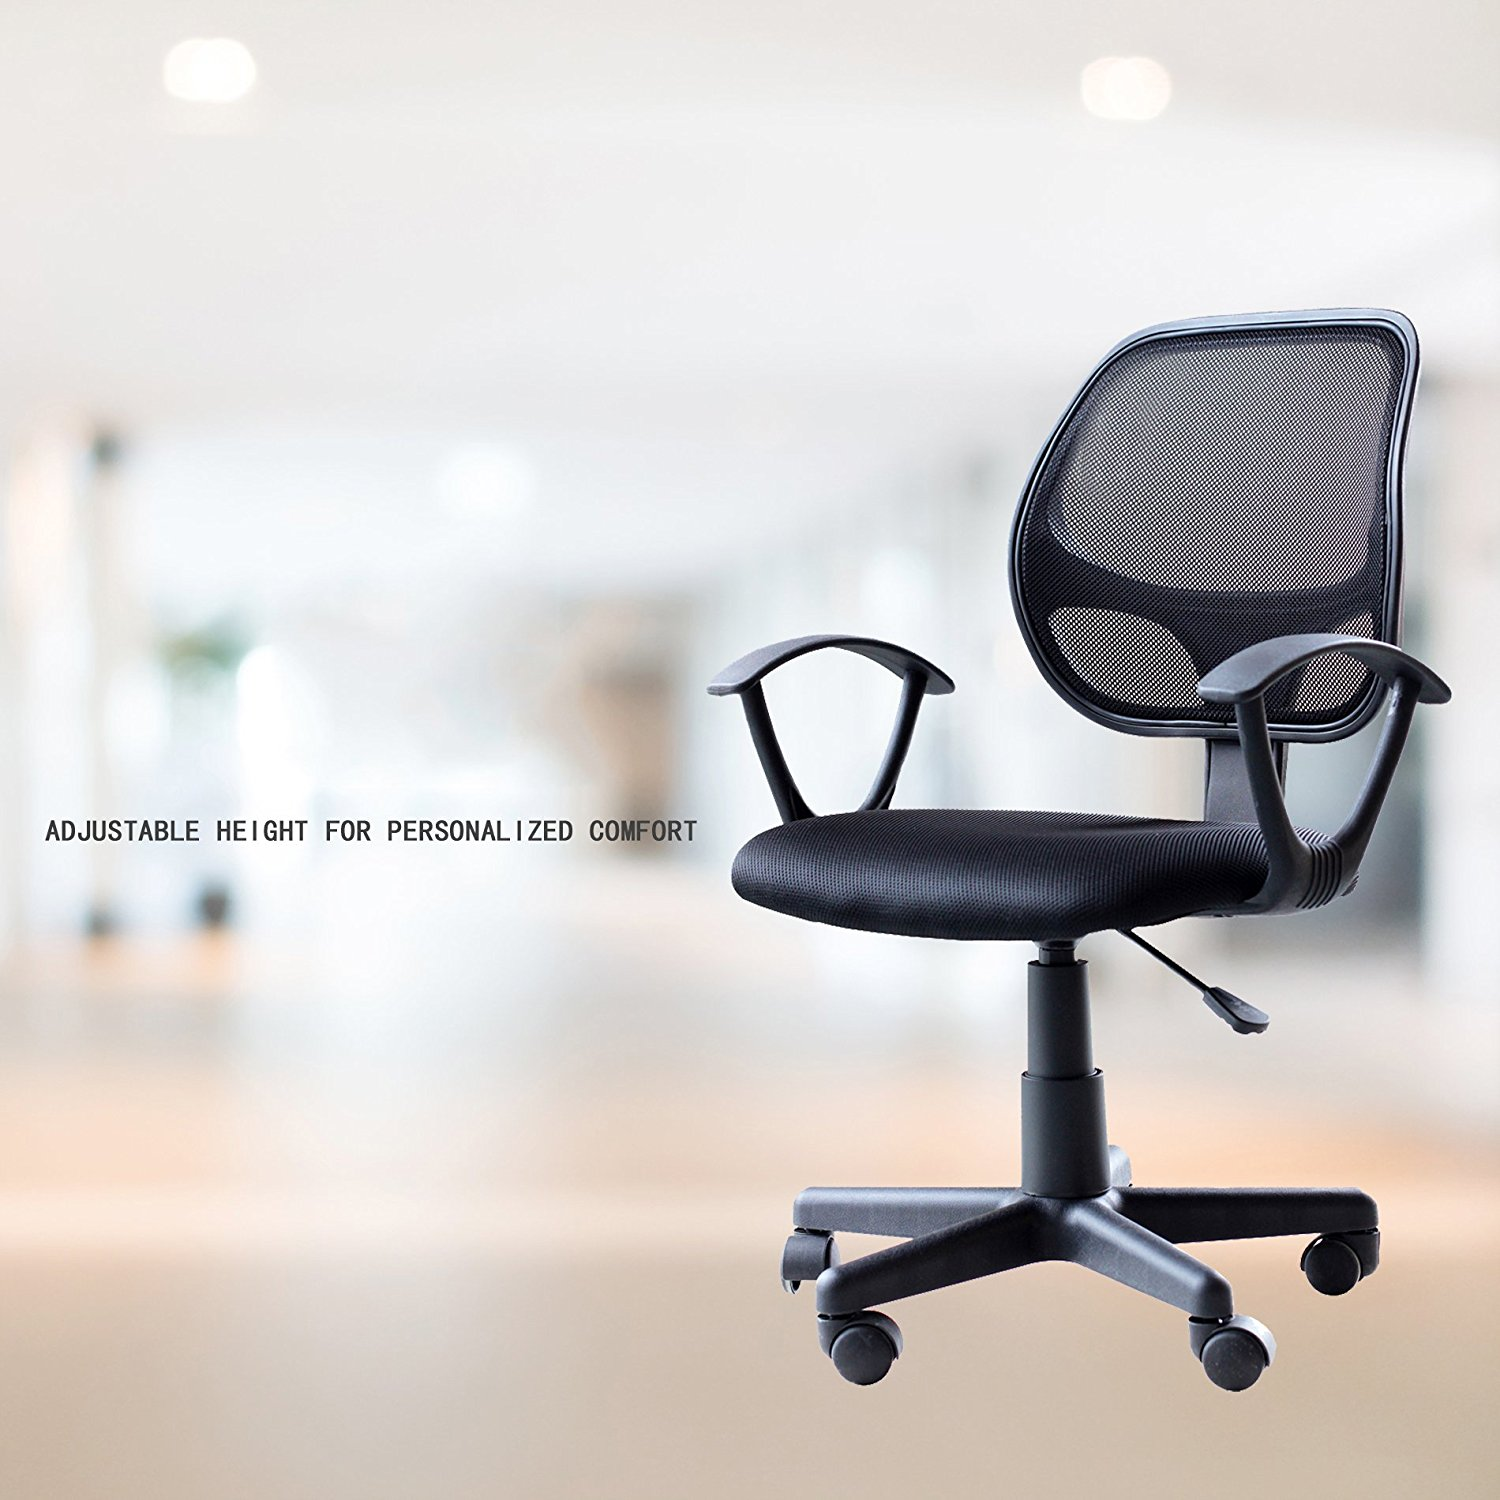 IDS Home Ergonomic Adjustable Mesh Low-Back Office Task Desk Chair with Arms